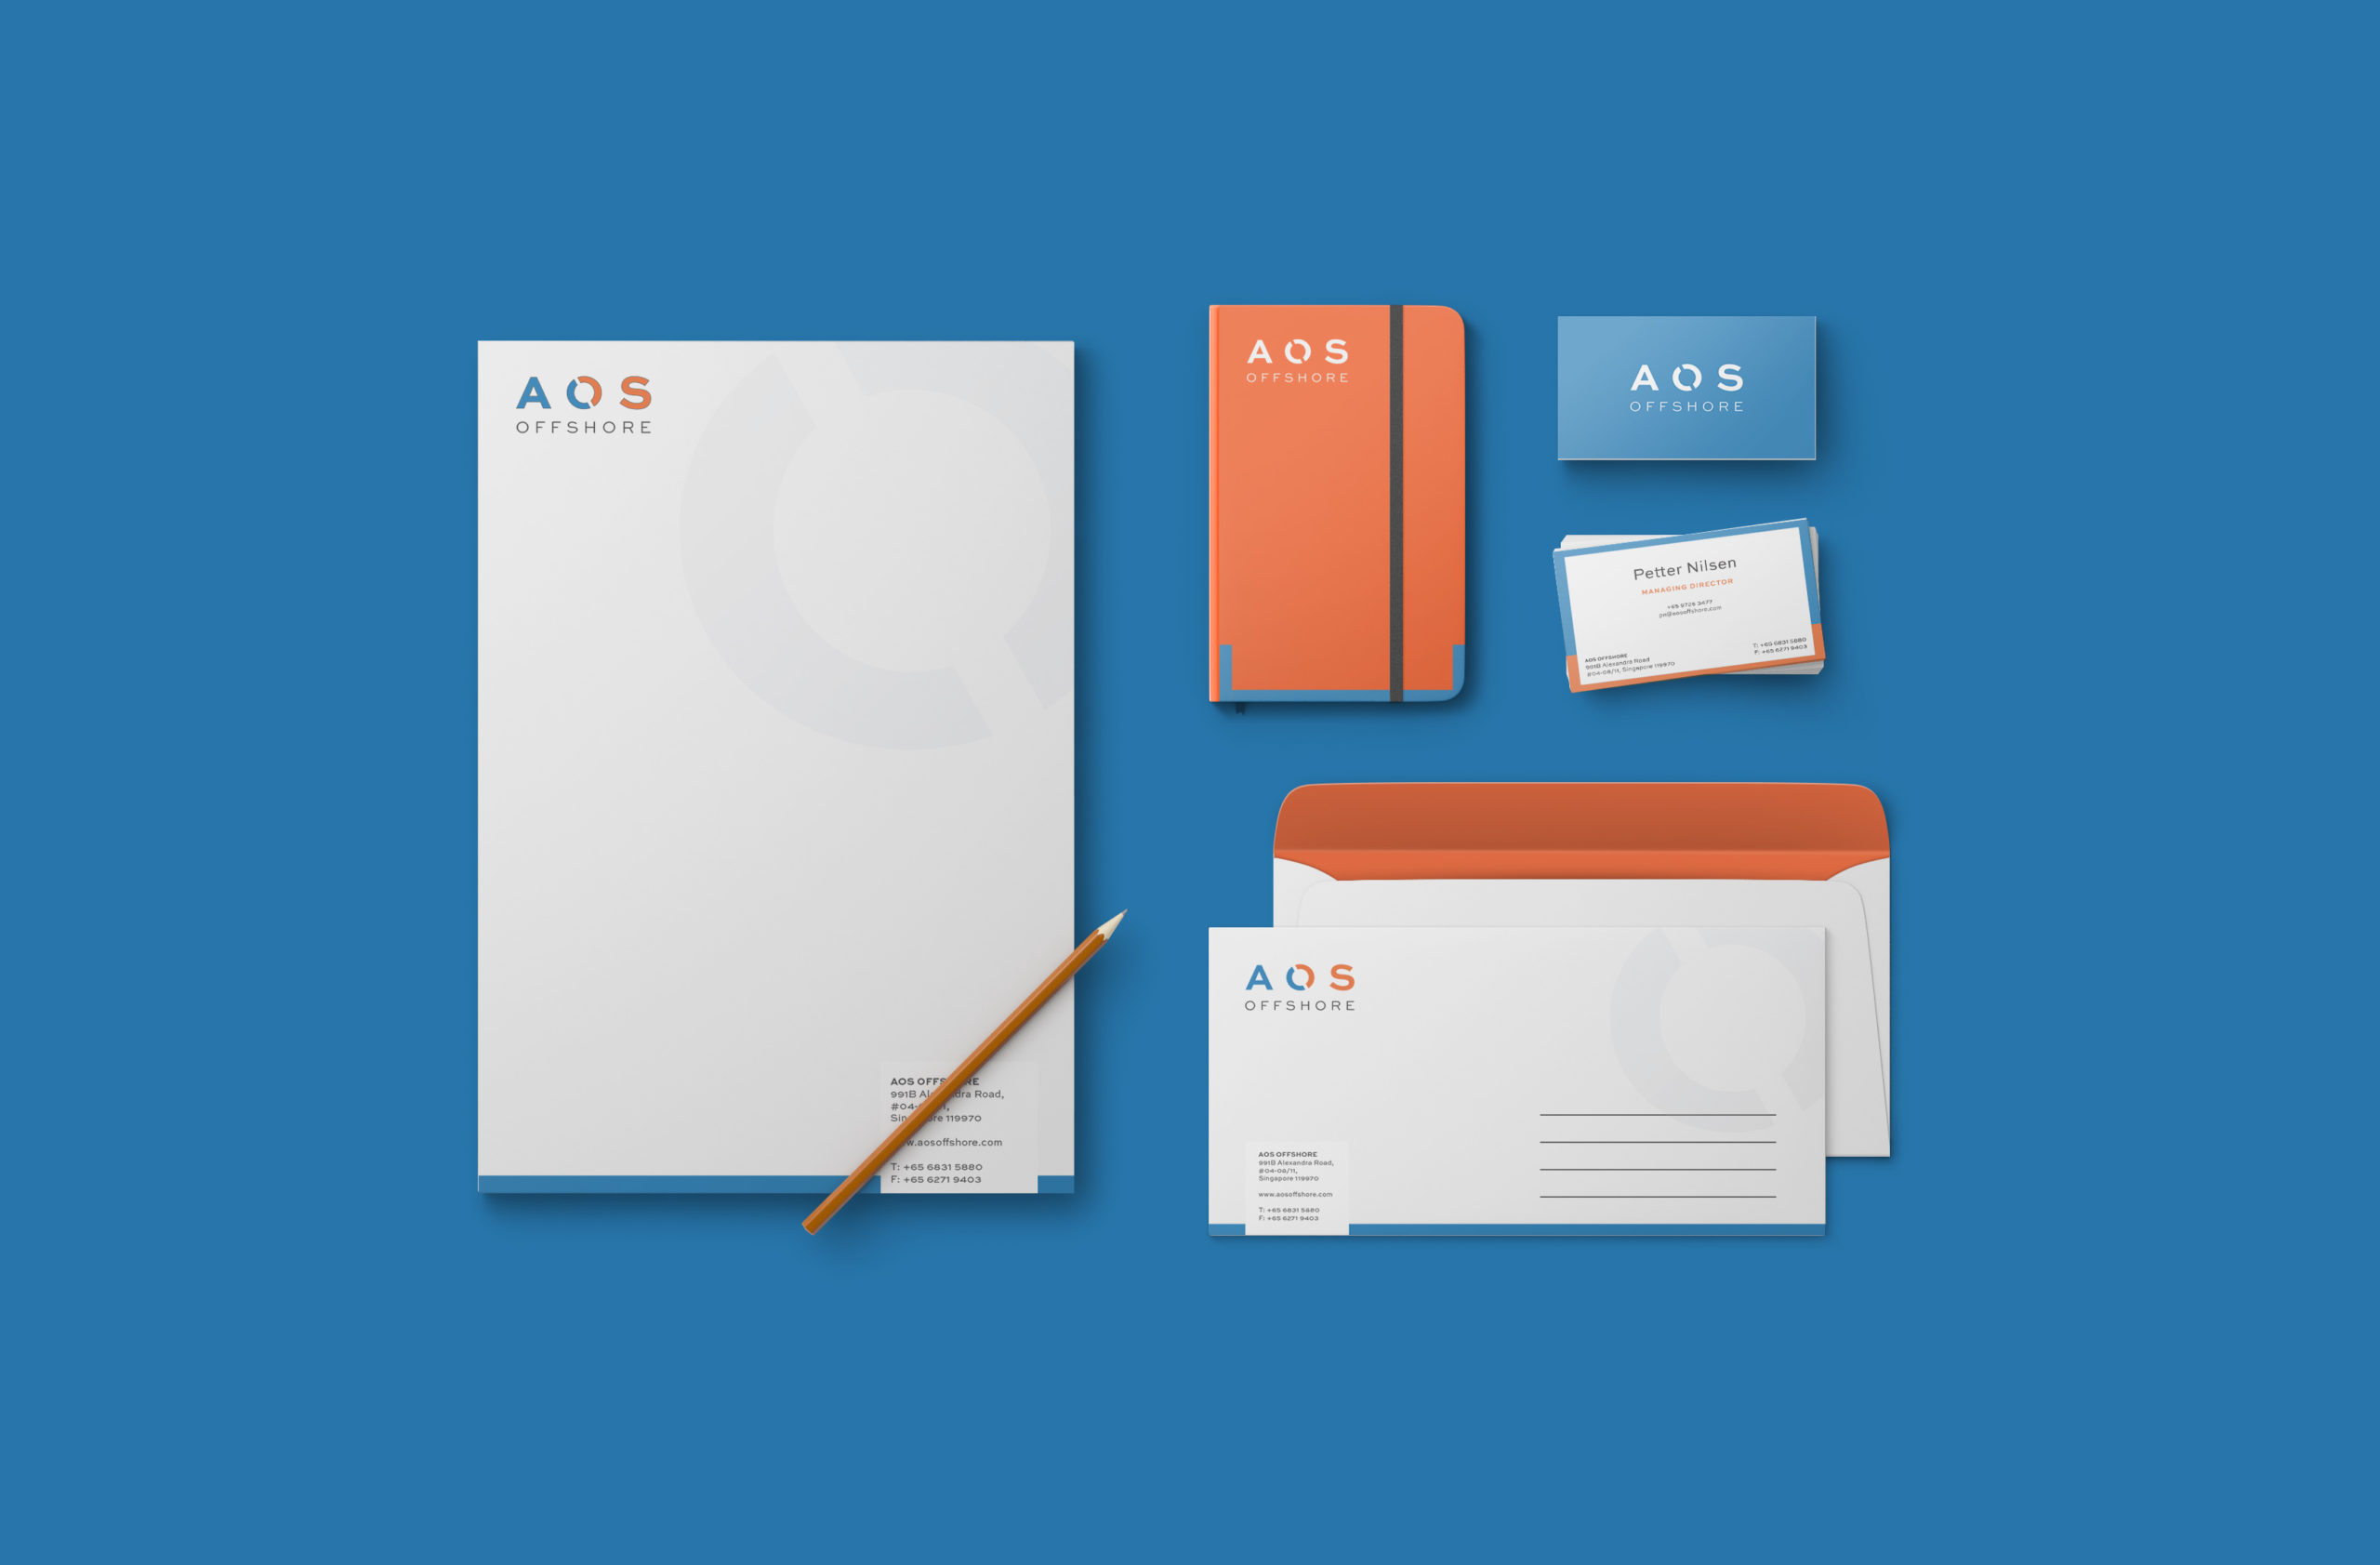 AOS Offshore Branding Suite